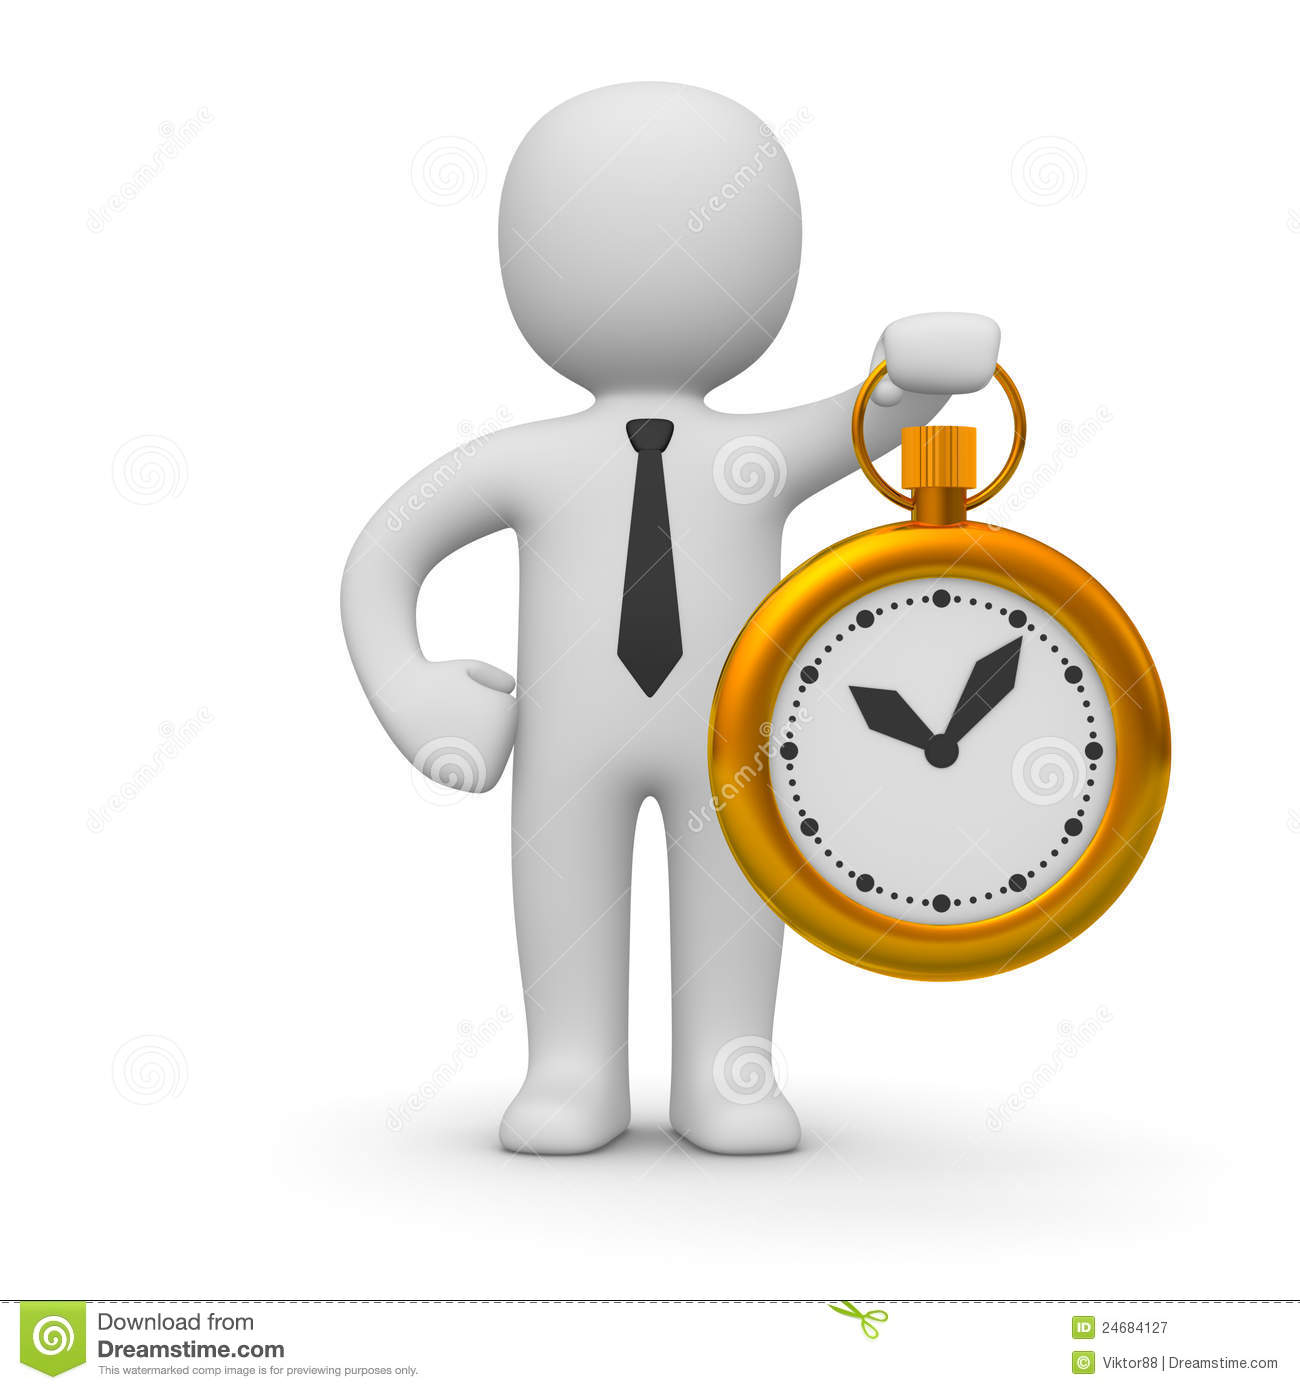 Uhr clipart kostenlos clipart royalty free Pünktlichkeit uhr clipart - ClipartFox clipart royalty free